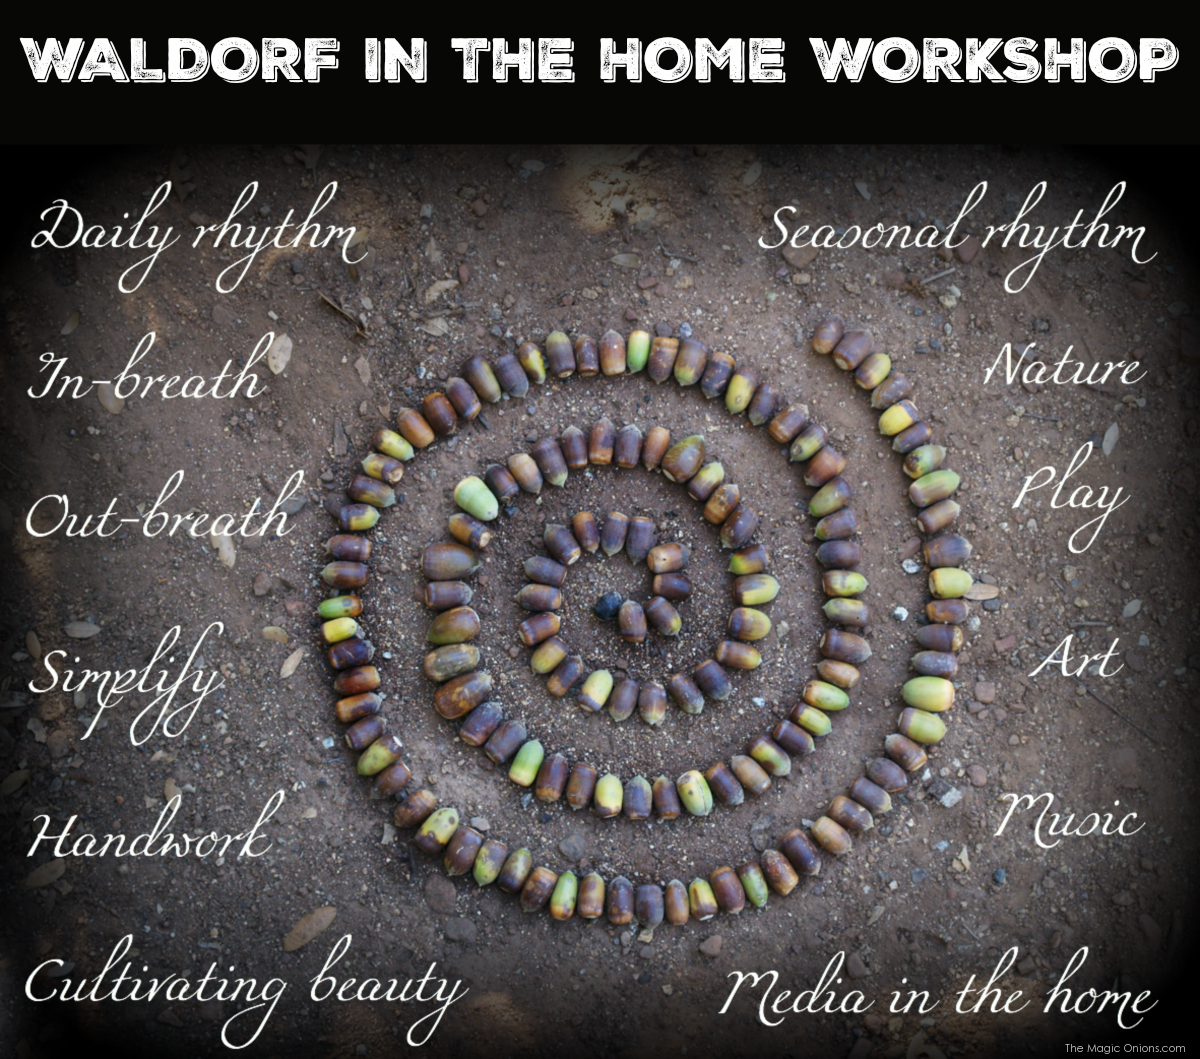 8 Steps to a Waldorf-Inspired Home Workshop. How to bring the beauty of Waldorf philosophies into your home by The Magic Onions